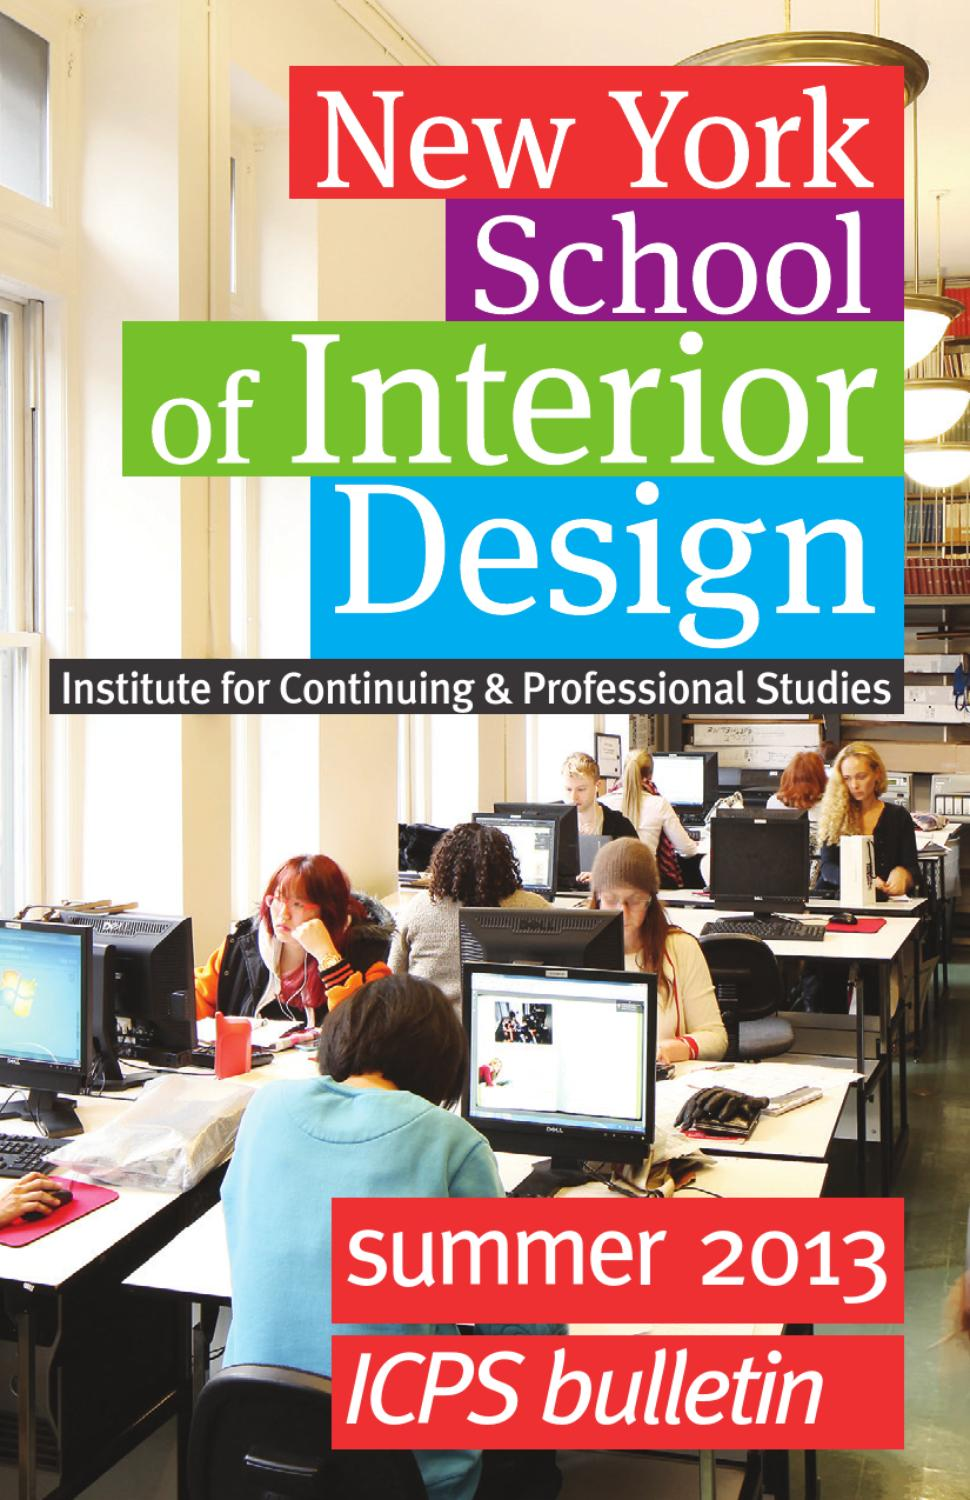 Summer 2013 Icps Bulletin By New York School Of Interior Design Issuu